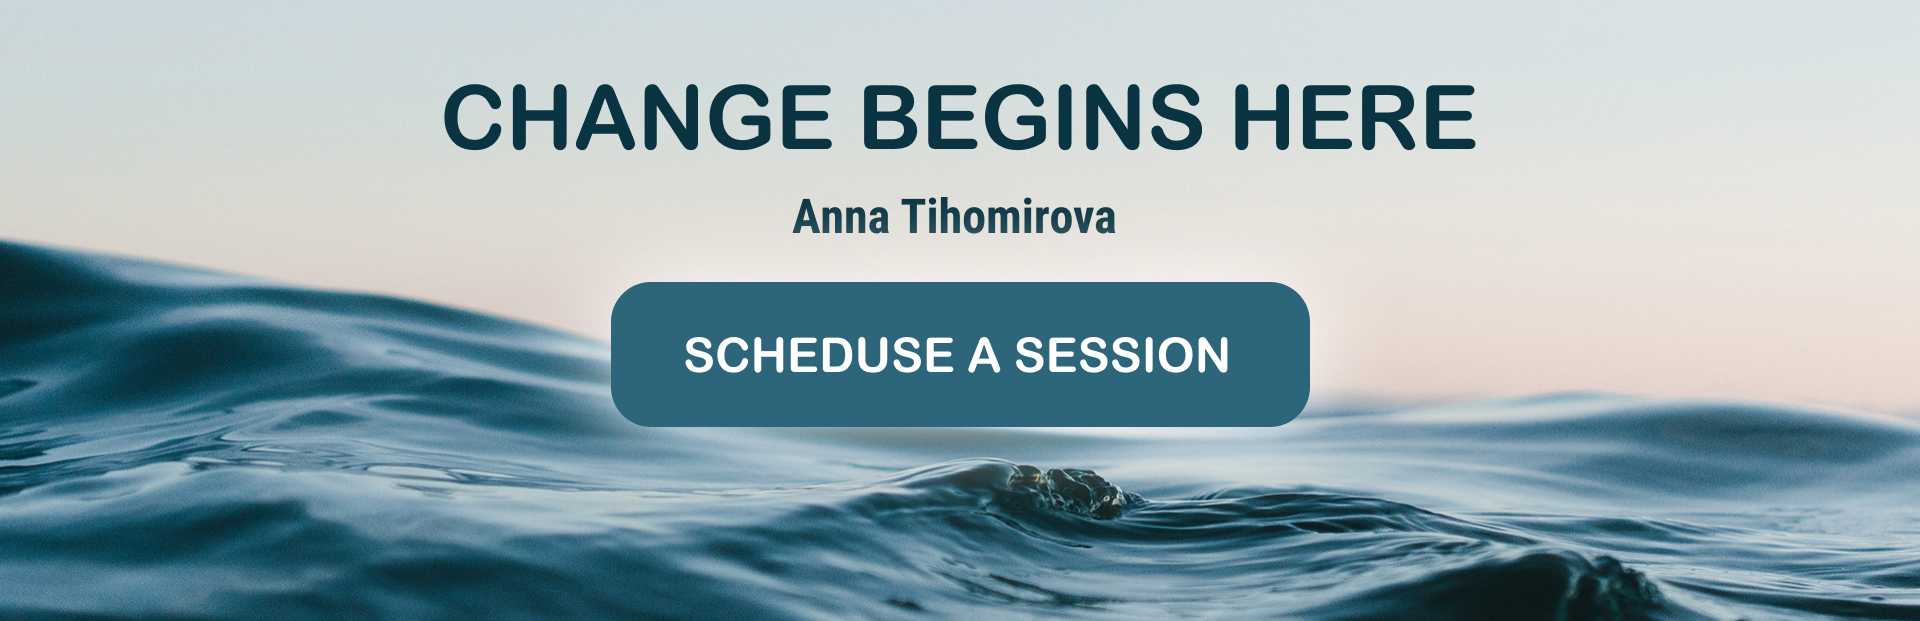 the professional counselor Anna Tihomirova header image